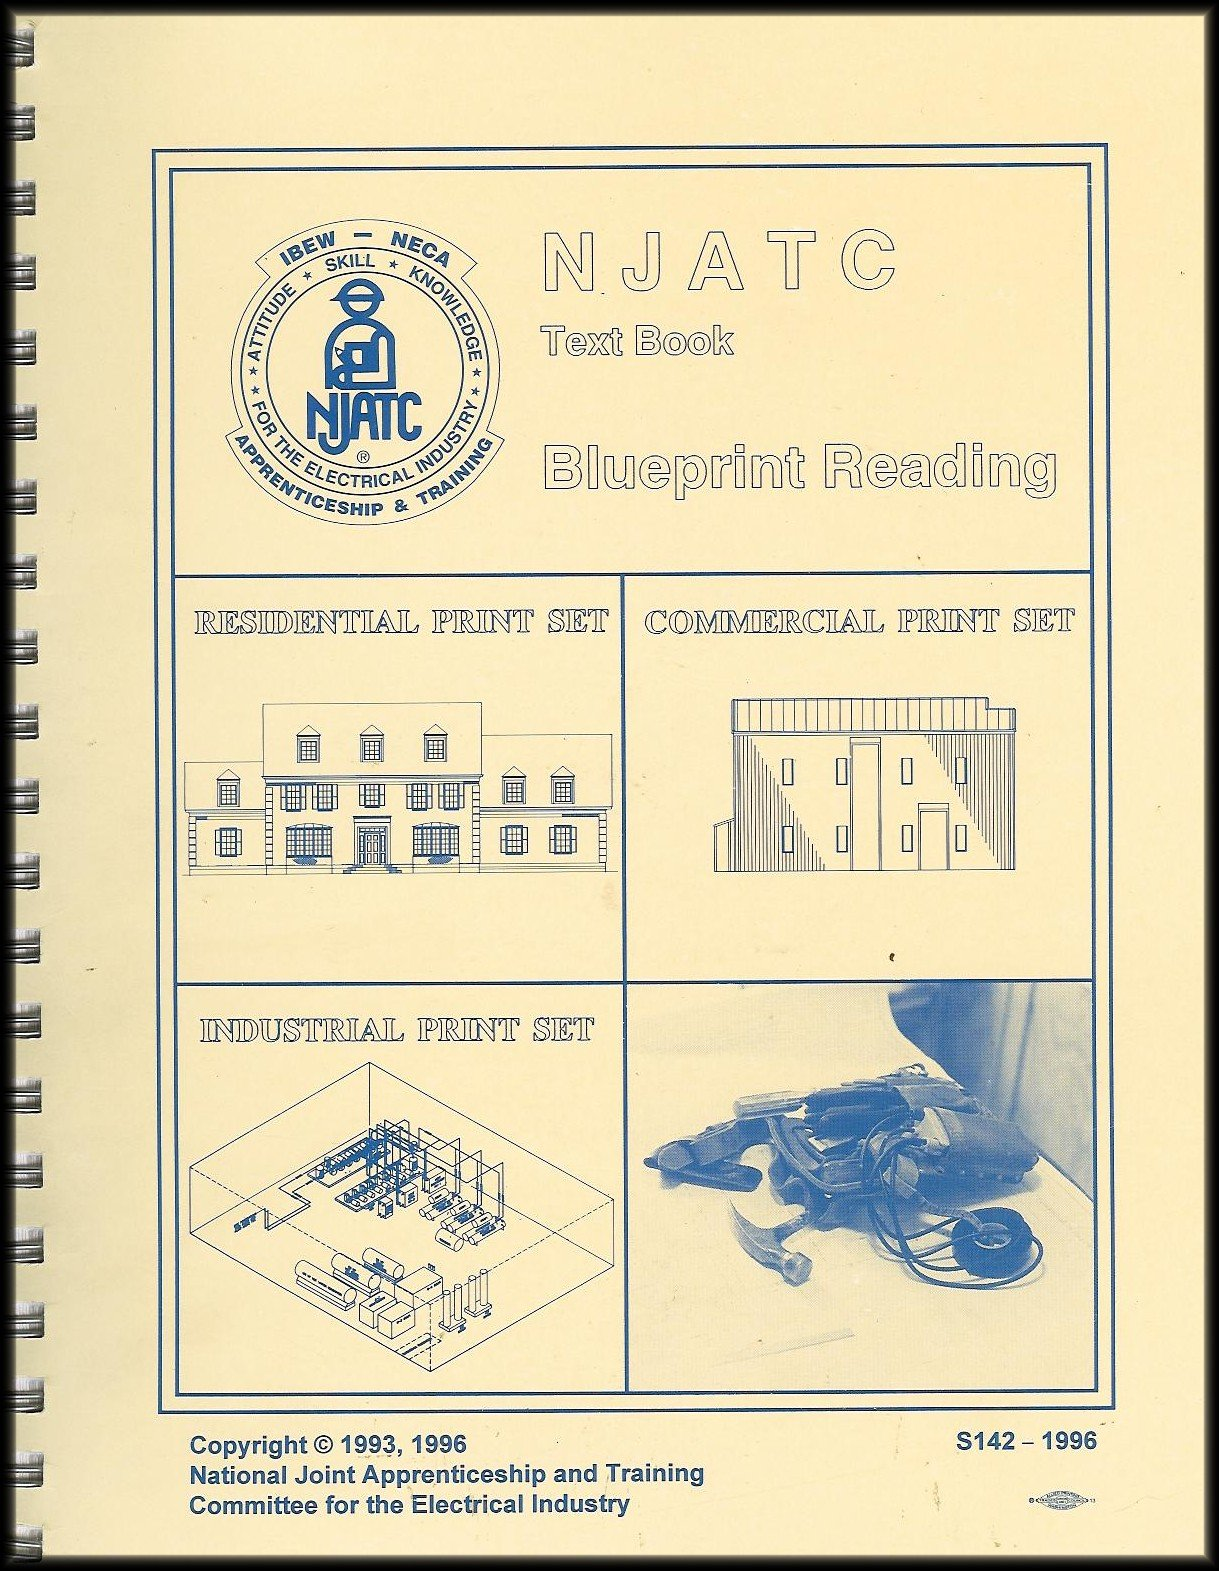 NJATC Blueprint Reading for Electricians: Residential ... on fire prints, national electrical code, basic electrical troubleshooting, electrical troubleshooting, electrical safety, pneumatic prints, mechanical prints, paint prints, plumbing prints, architectural prints, travel prints, electrical controls, fabrication prints, hvac prints, science prints, electrical courses, automotive prints, painting prints, design prints, electrical wiring, electrical theory, environmental prints, home prints, horticulture prints, electrical control equipment, tires prints, industrial prints, veterinary prints,